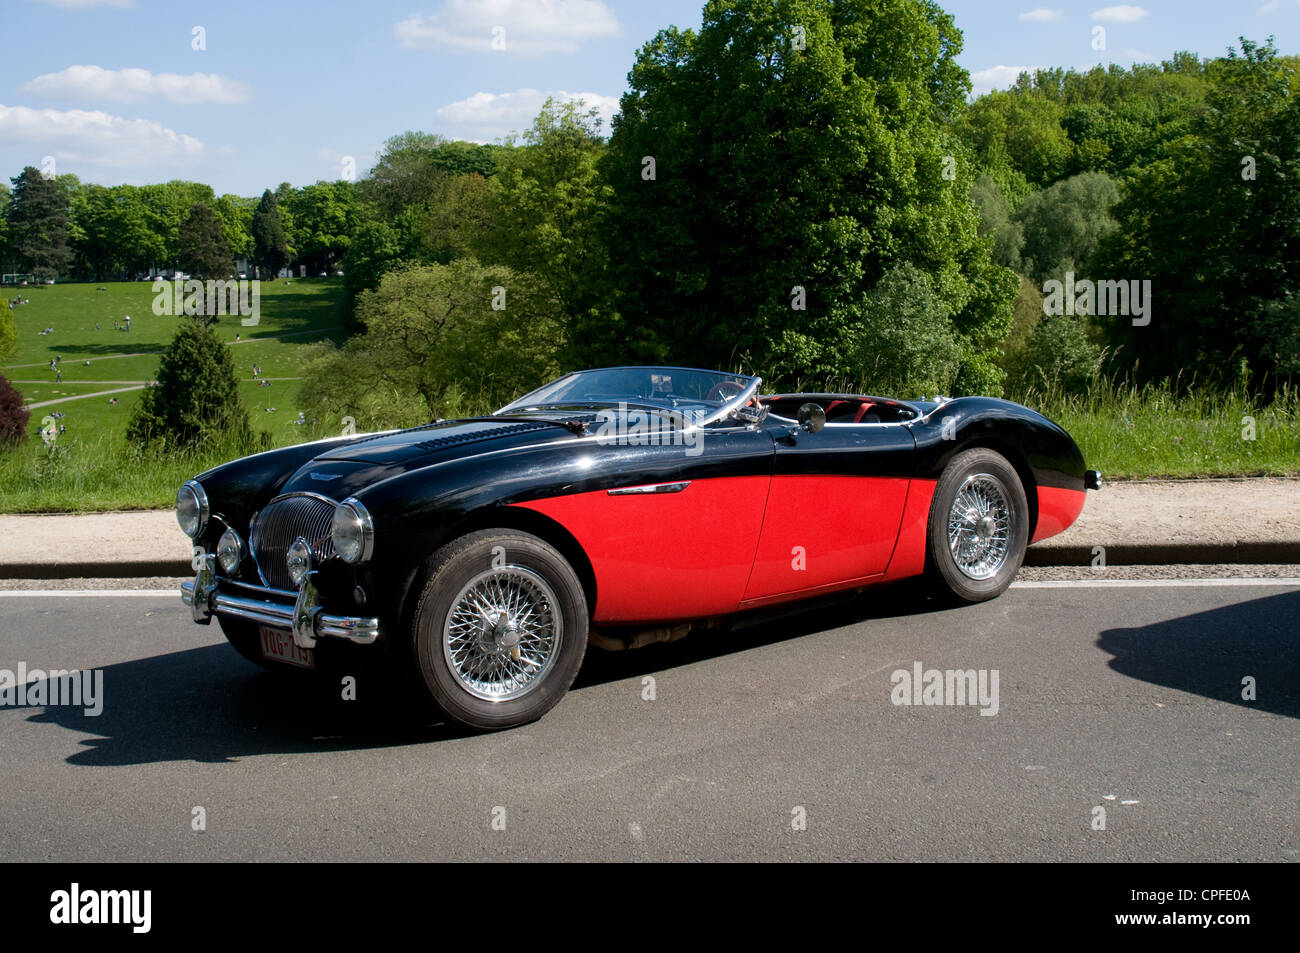 An Austin Healy 3000 sports car is on display at a car show in Brussles, Belgium. - Stock Image